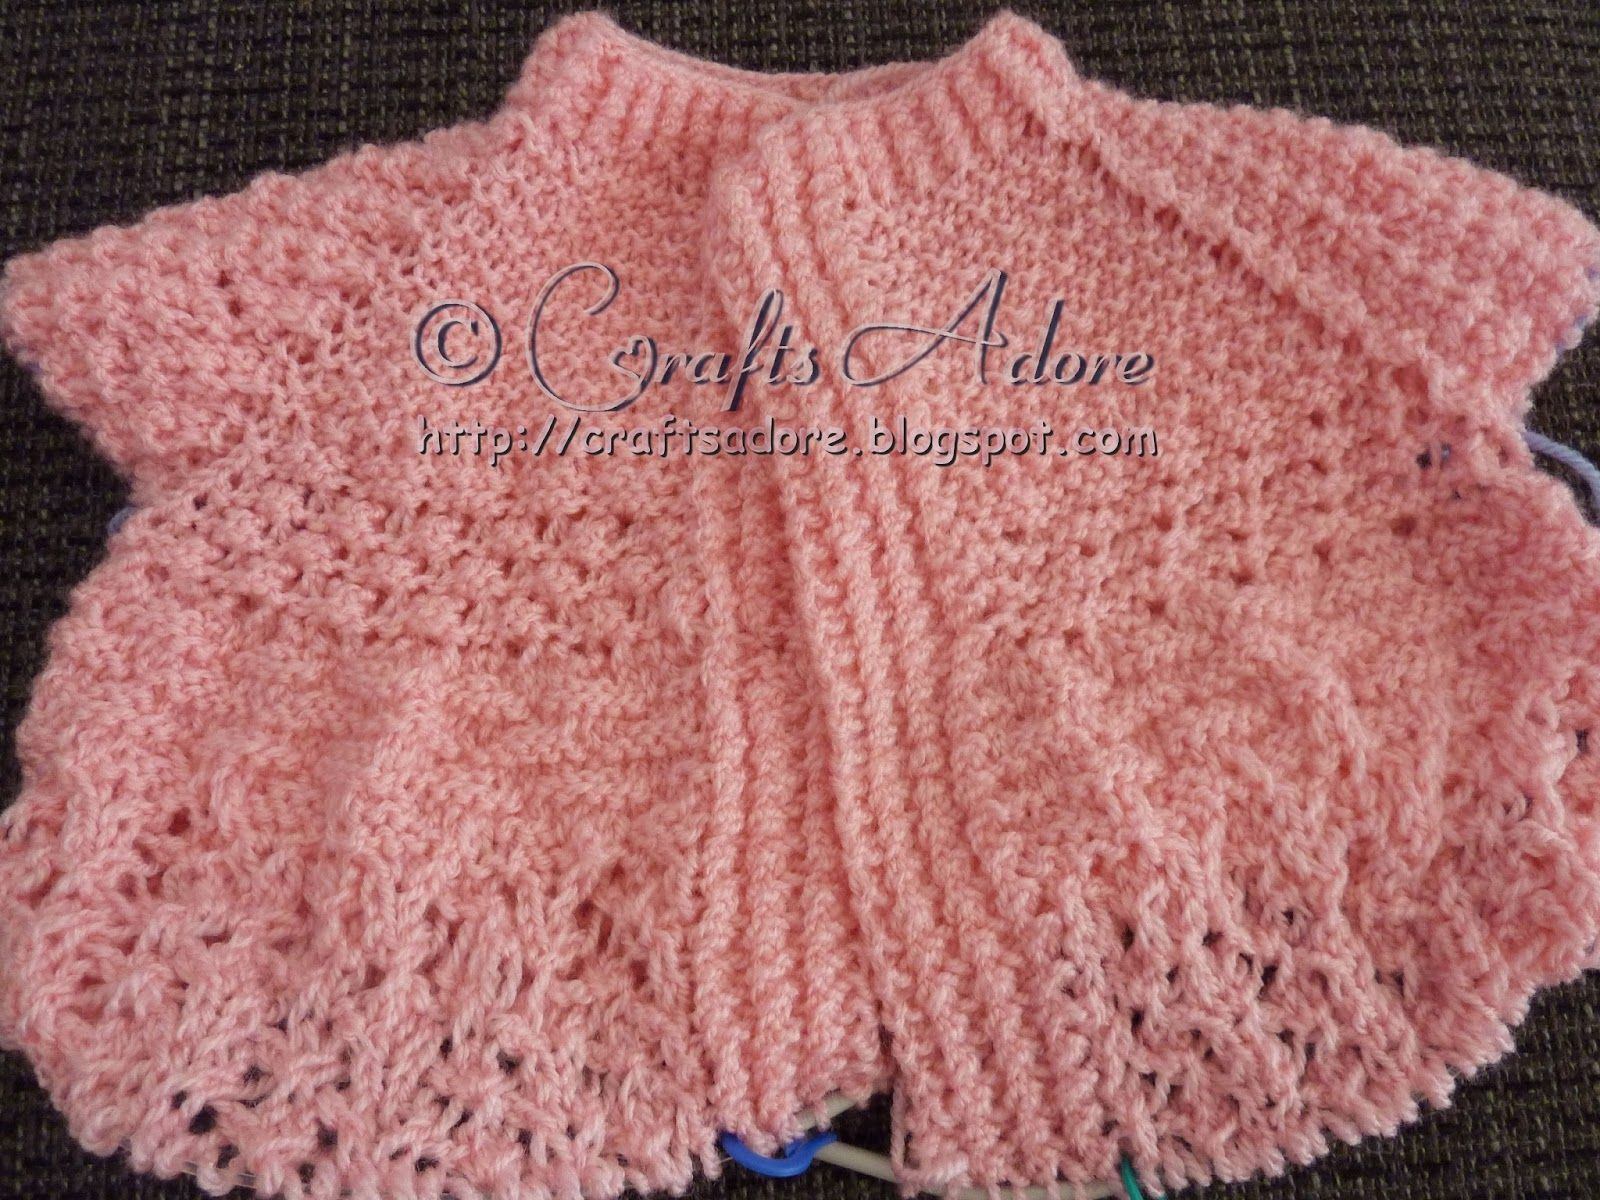 Knitted Baby Girl Layette Free Knitting Pattern | Knitting patterns ...